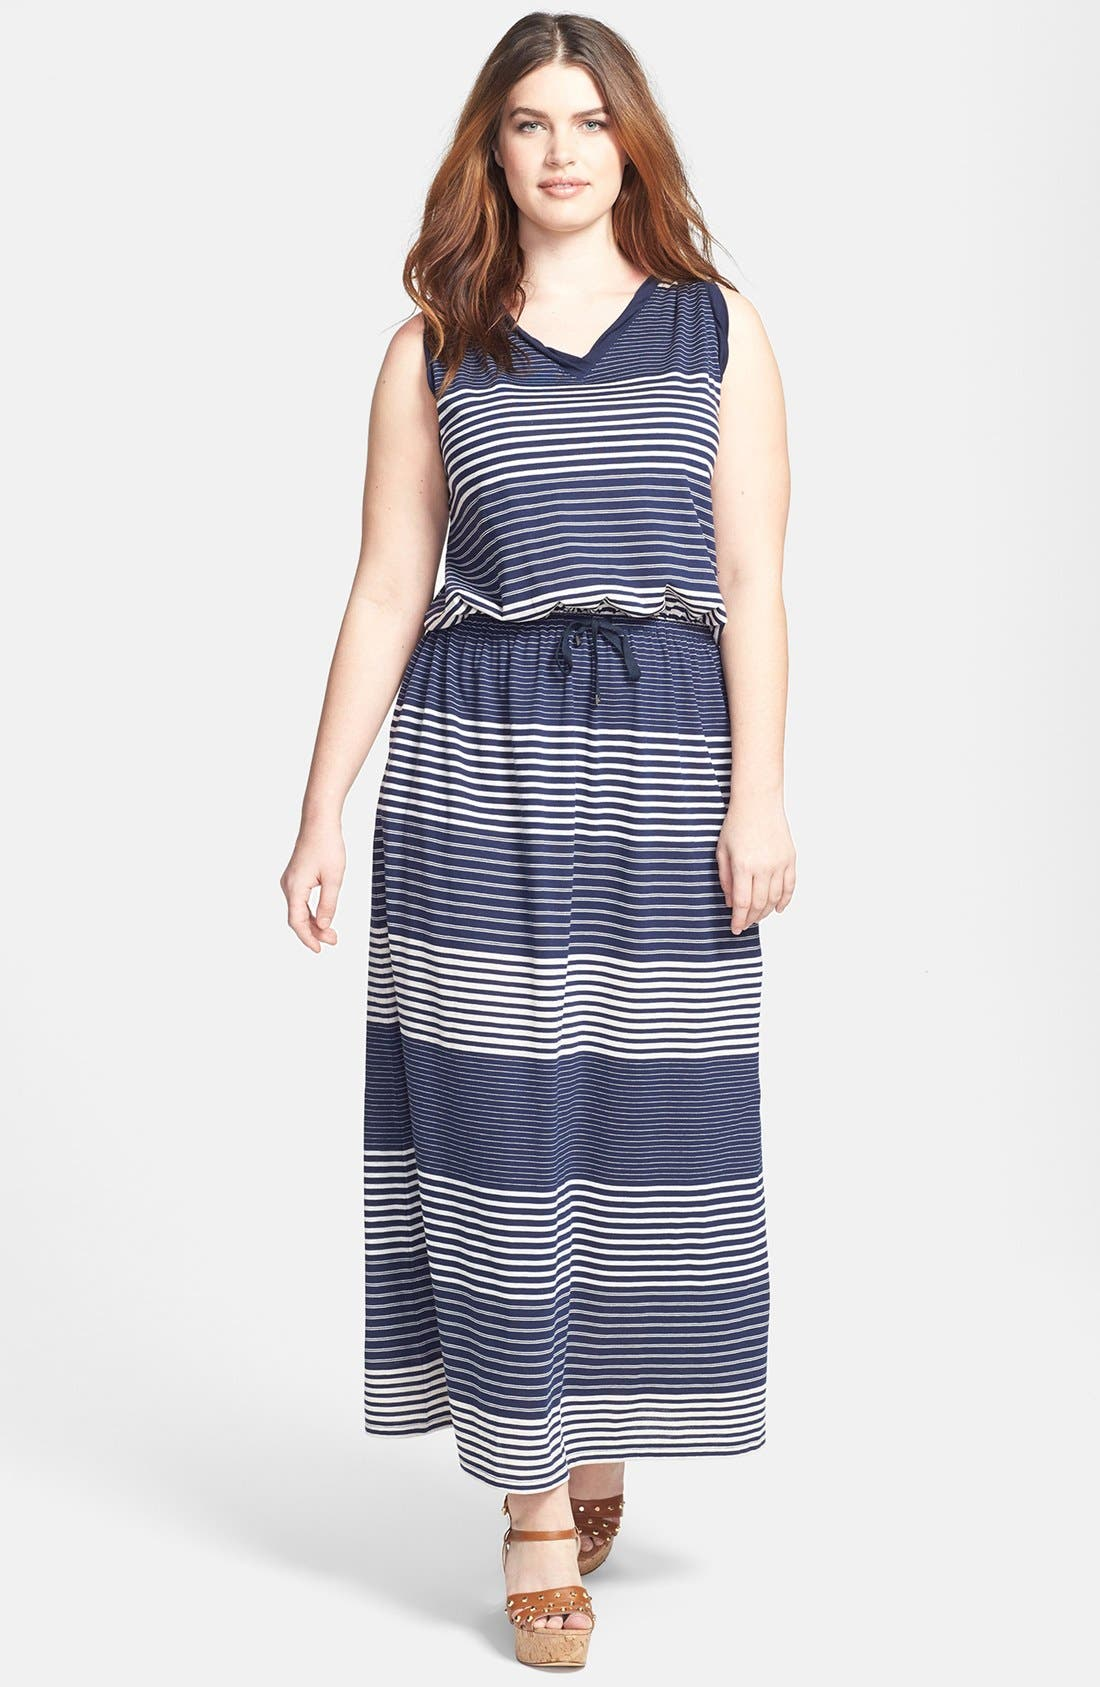 Alternate Image 1 Selected - Two by Vince Camuto Engineered Stripe Sleeveless Maxi Dress (Plus Size)